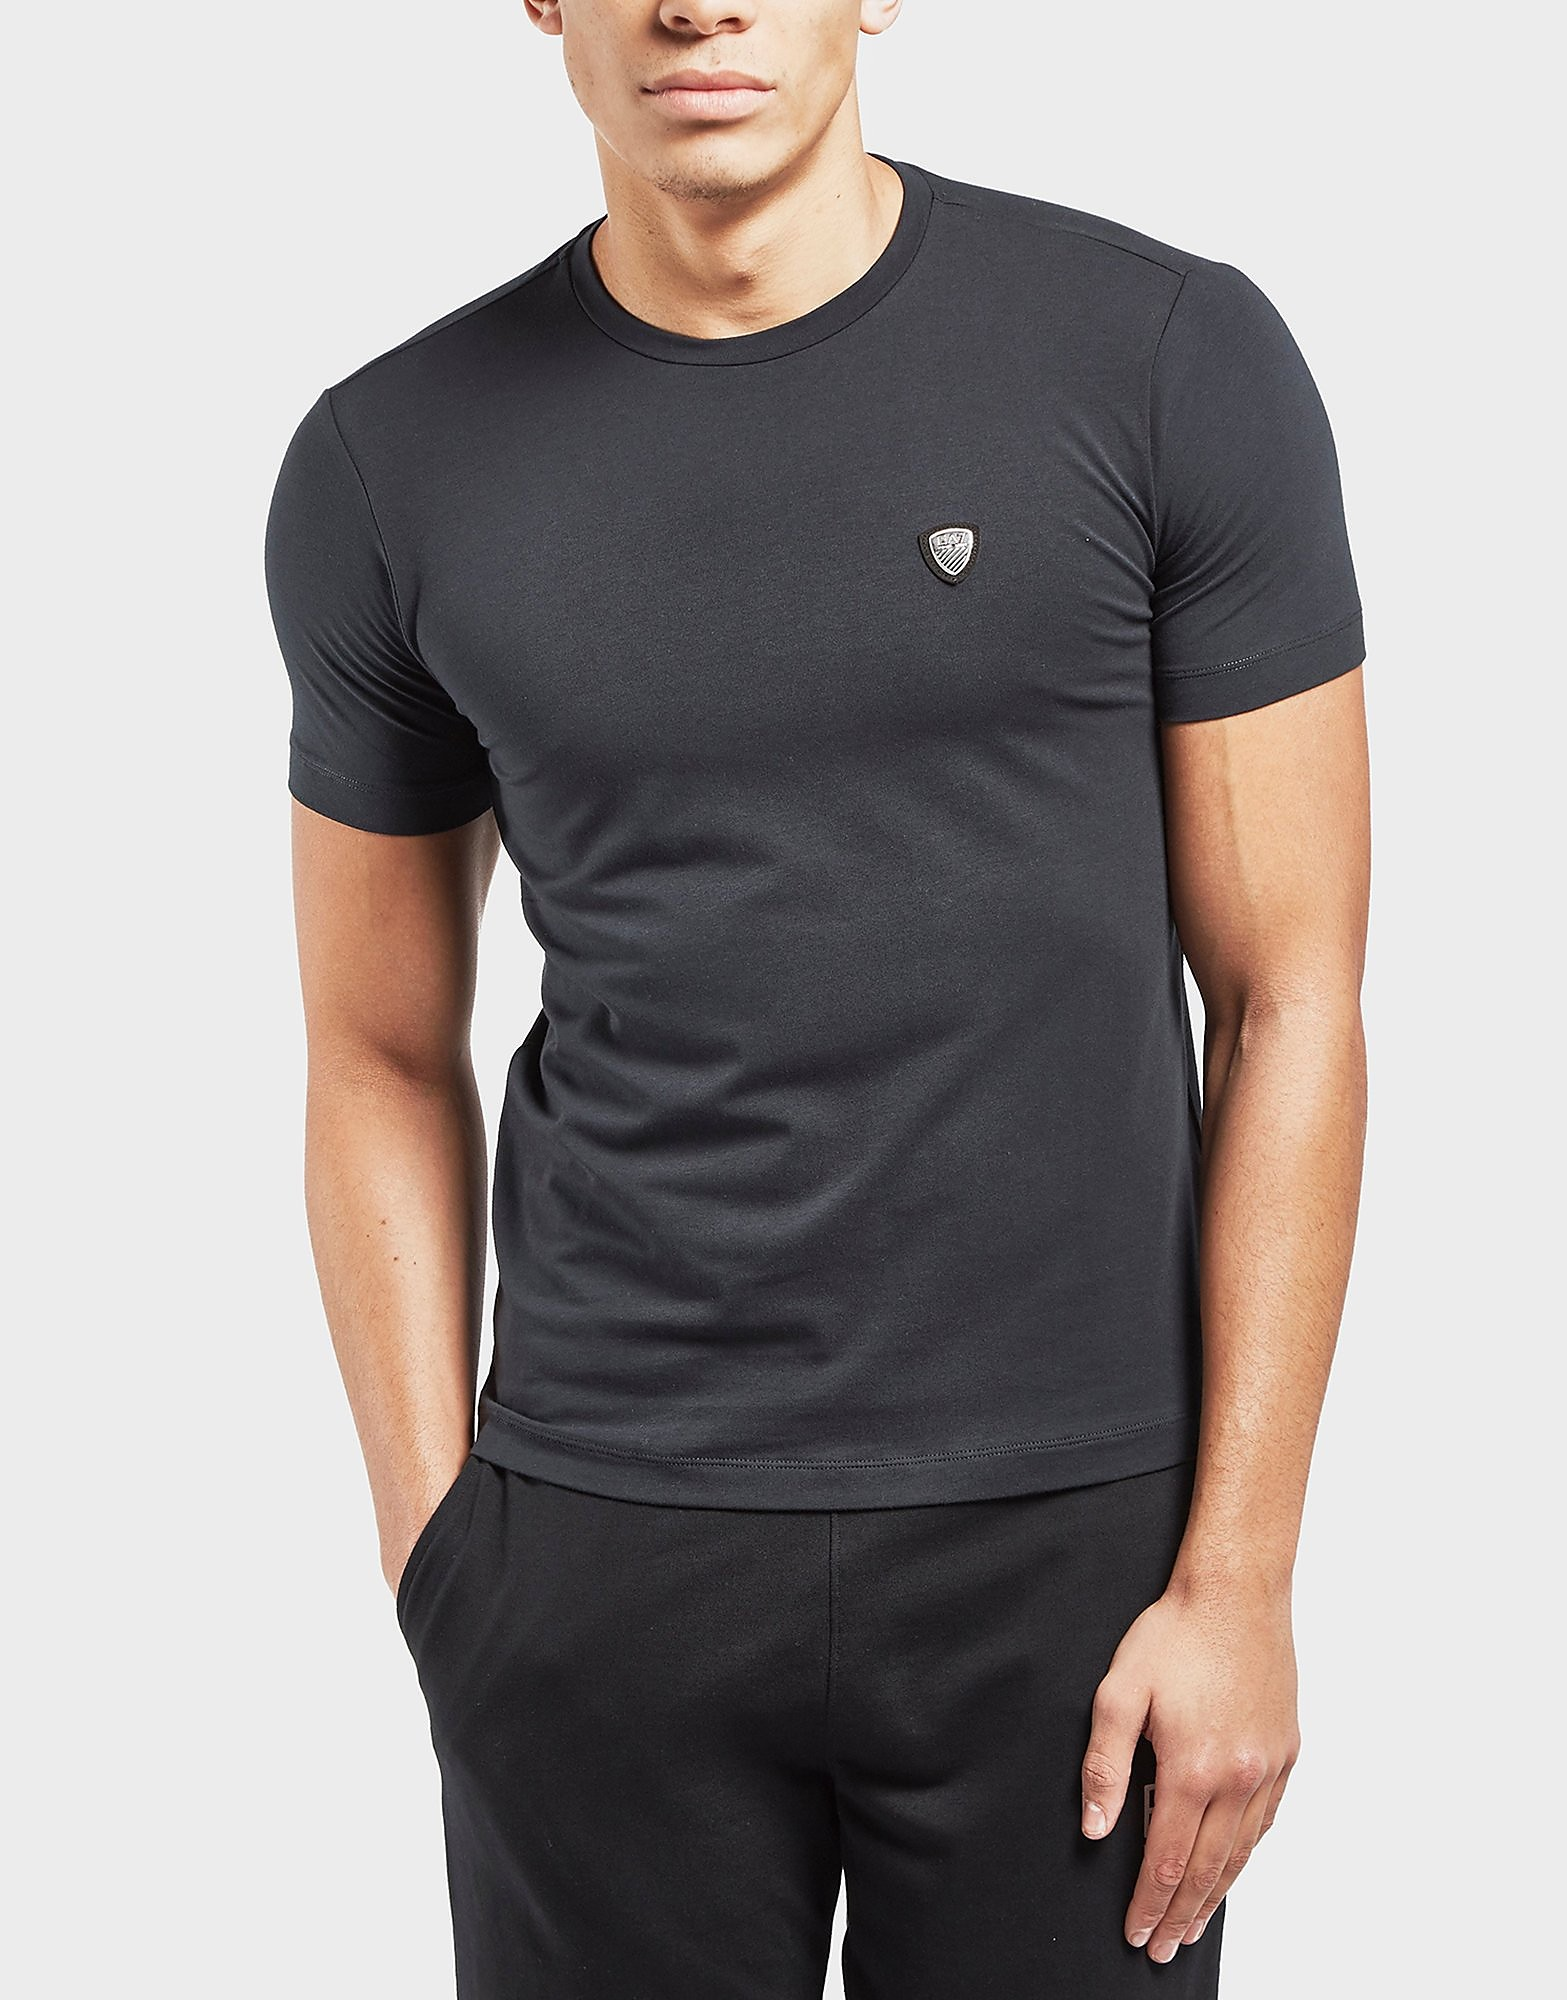 Emporio Armani EA7 Shield Logo Short Sleeve T-Shirt